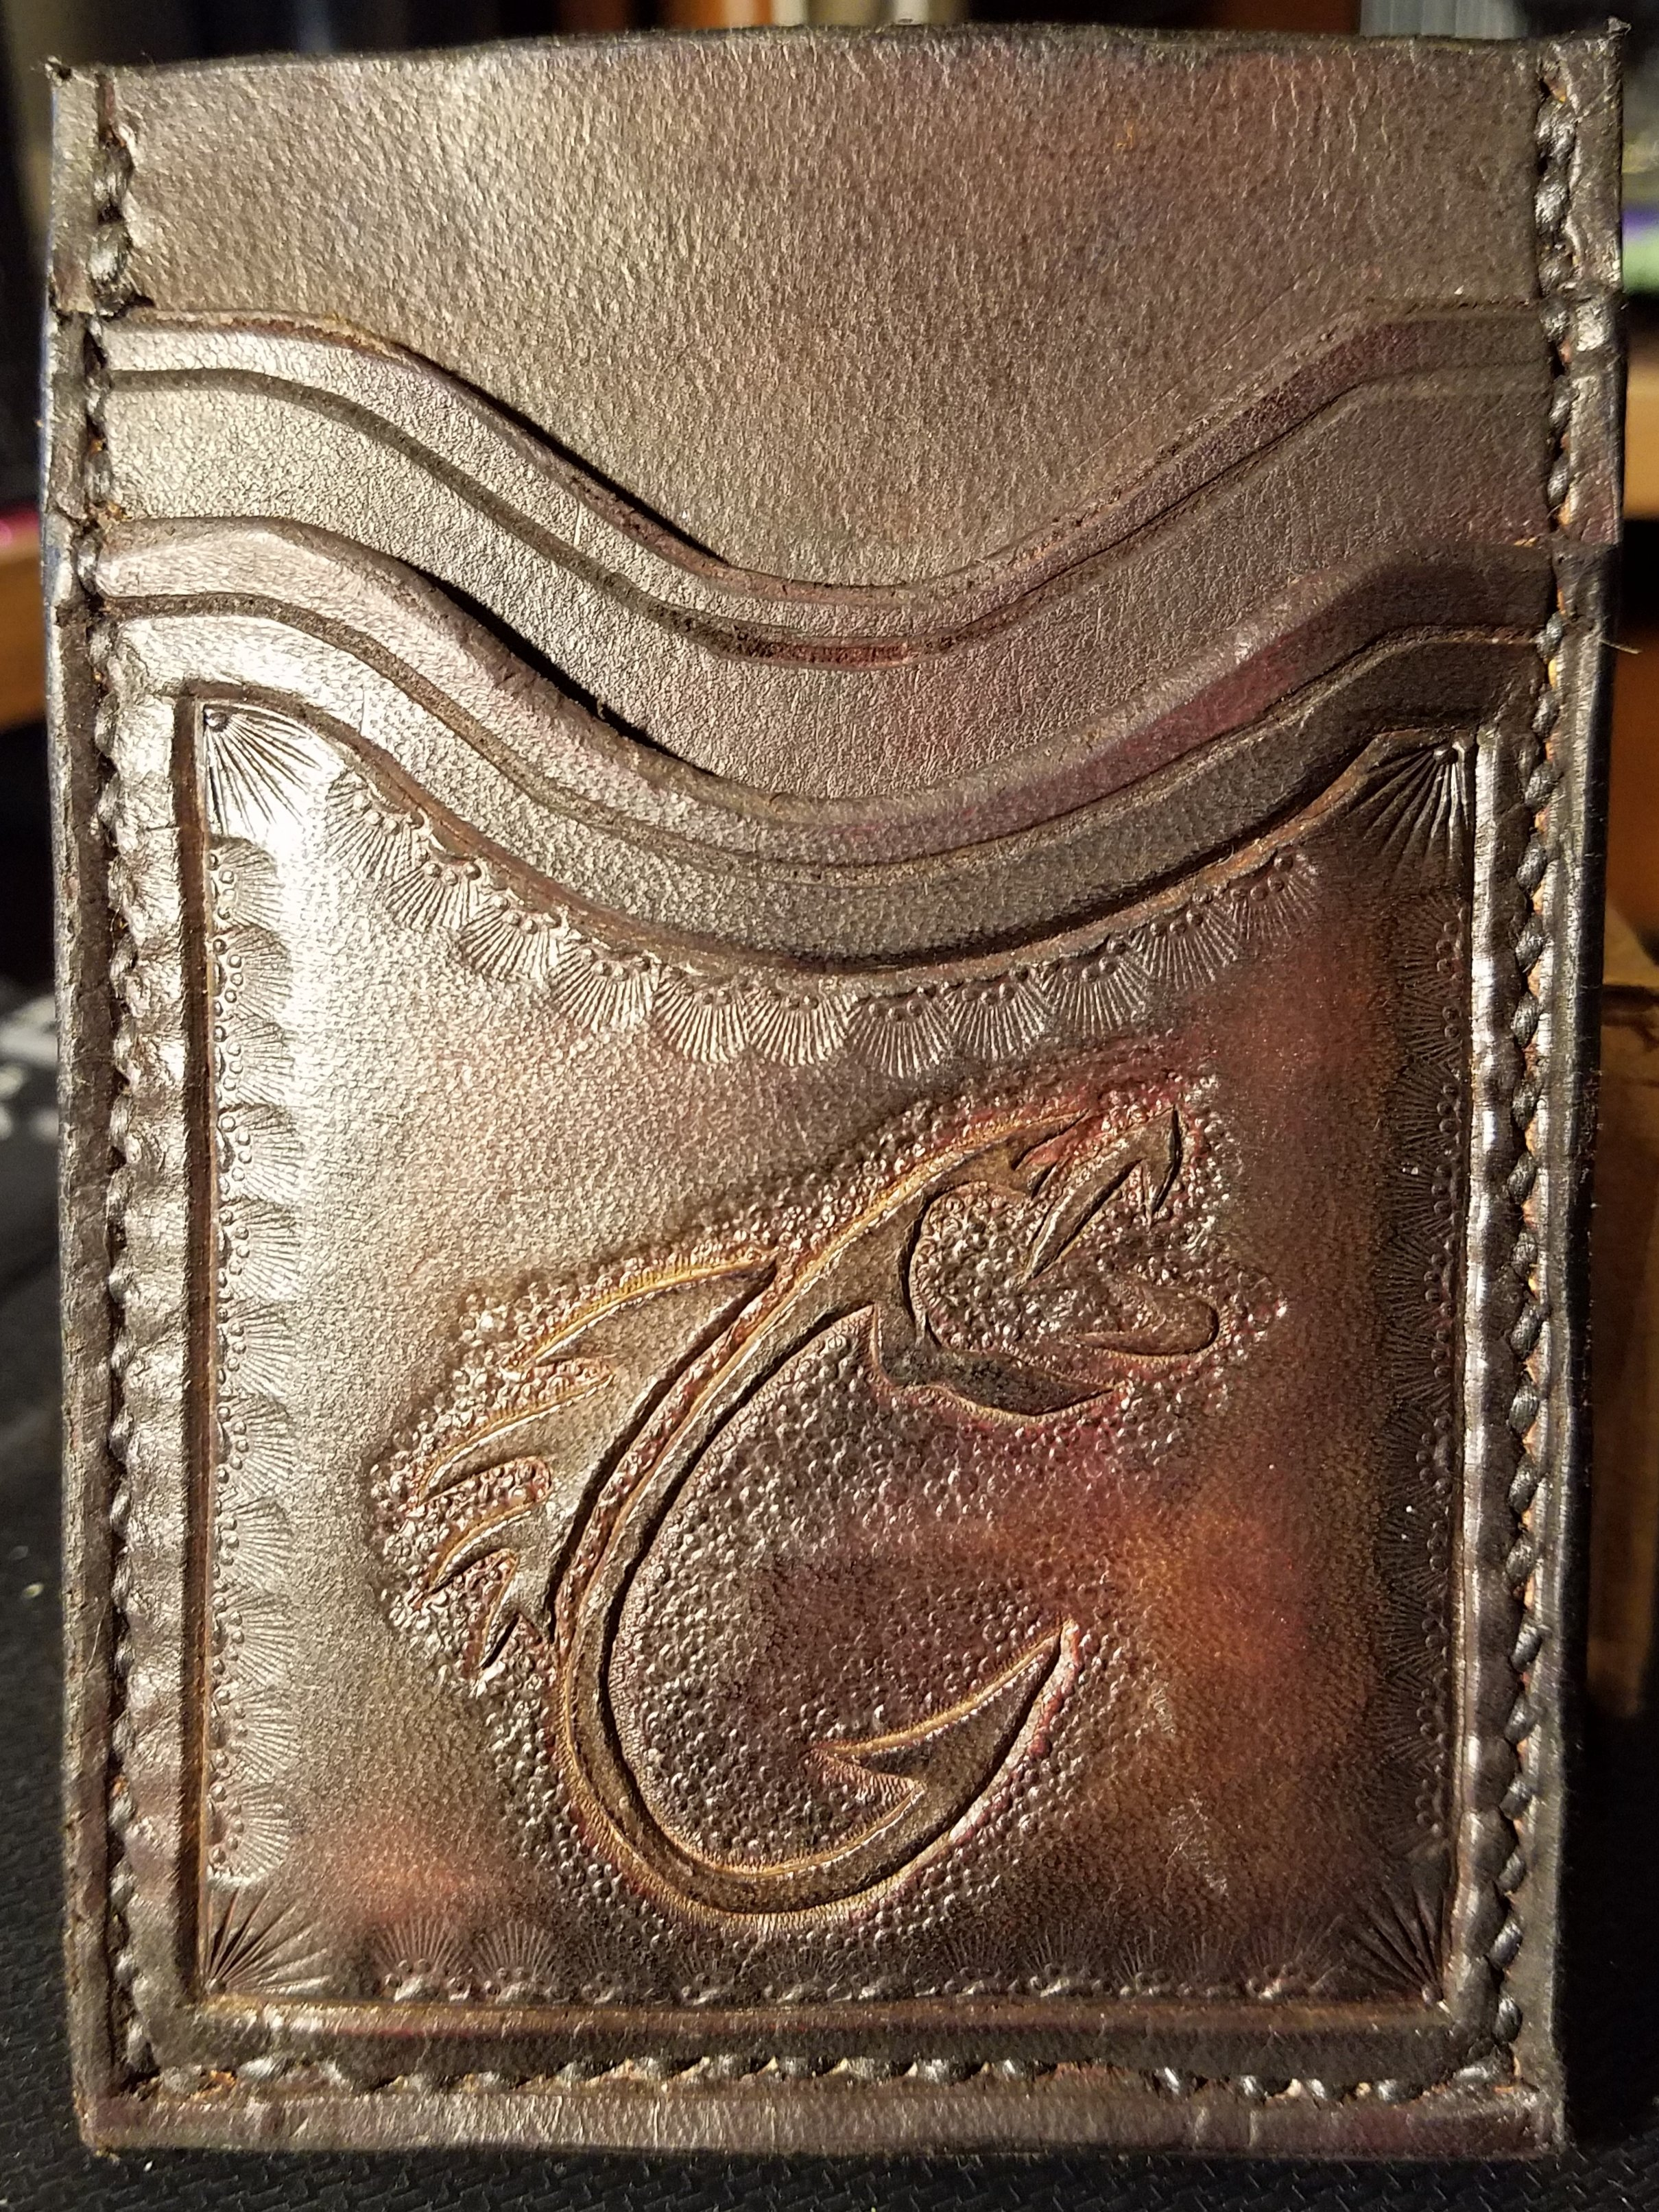 3 pocket minimalist wallet, hand tooled and stitched, $55.00